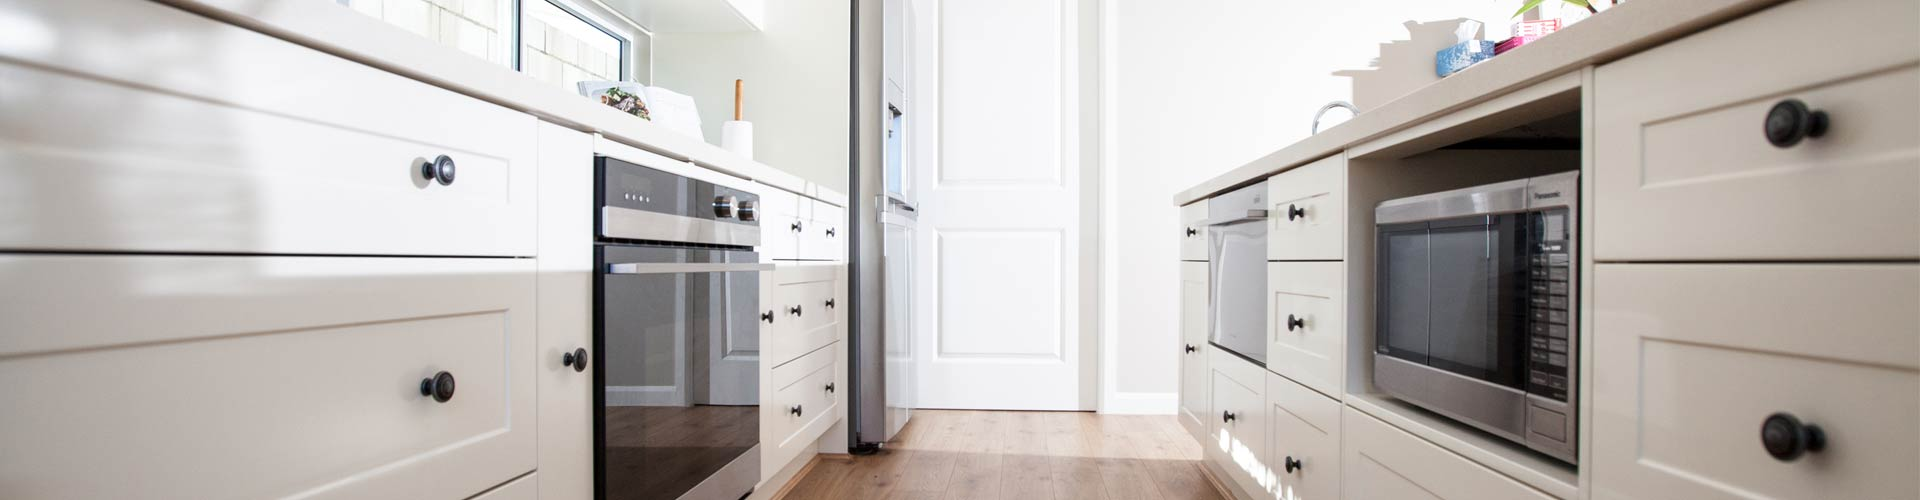 Cabinetry Solutions Kitchen Drawers Hero Image